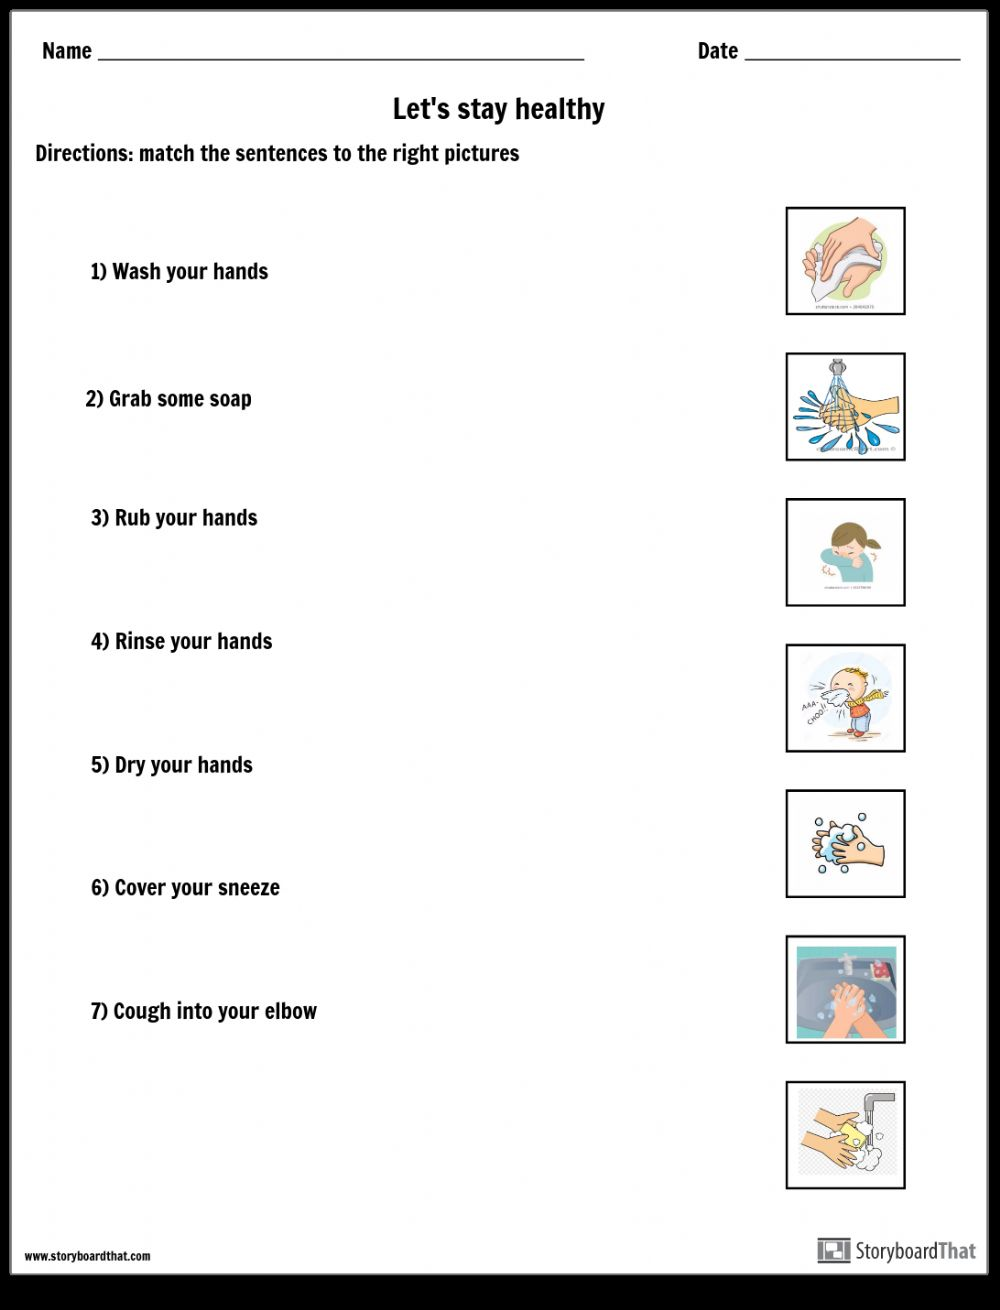 hight resolution of Let's stay healthy worksheet